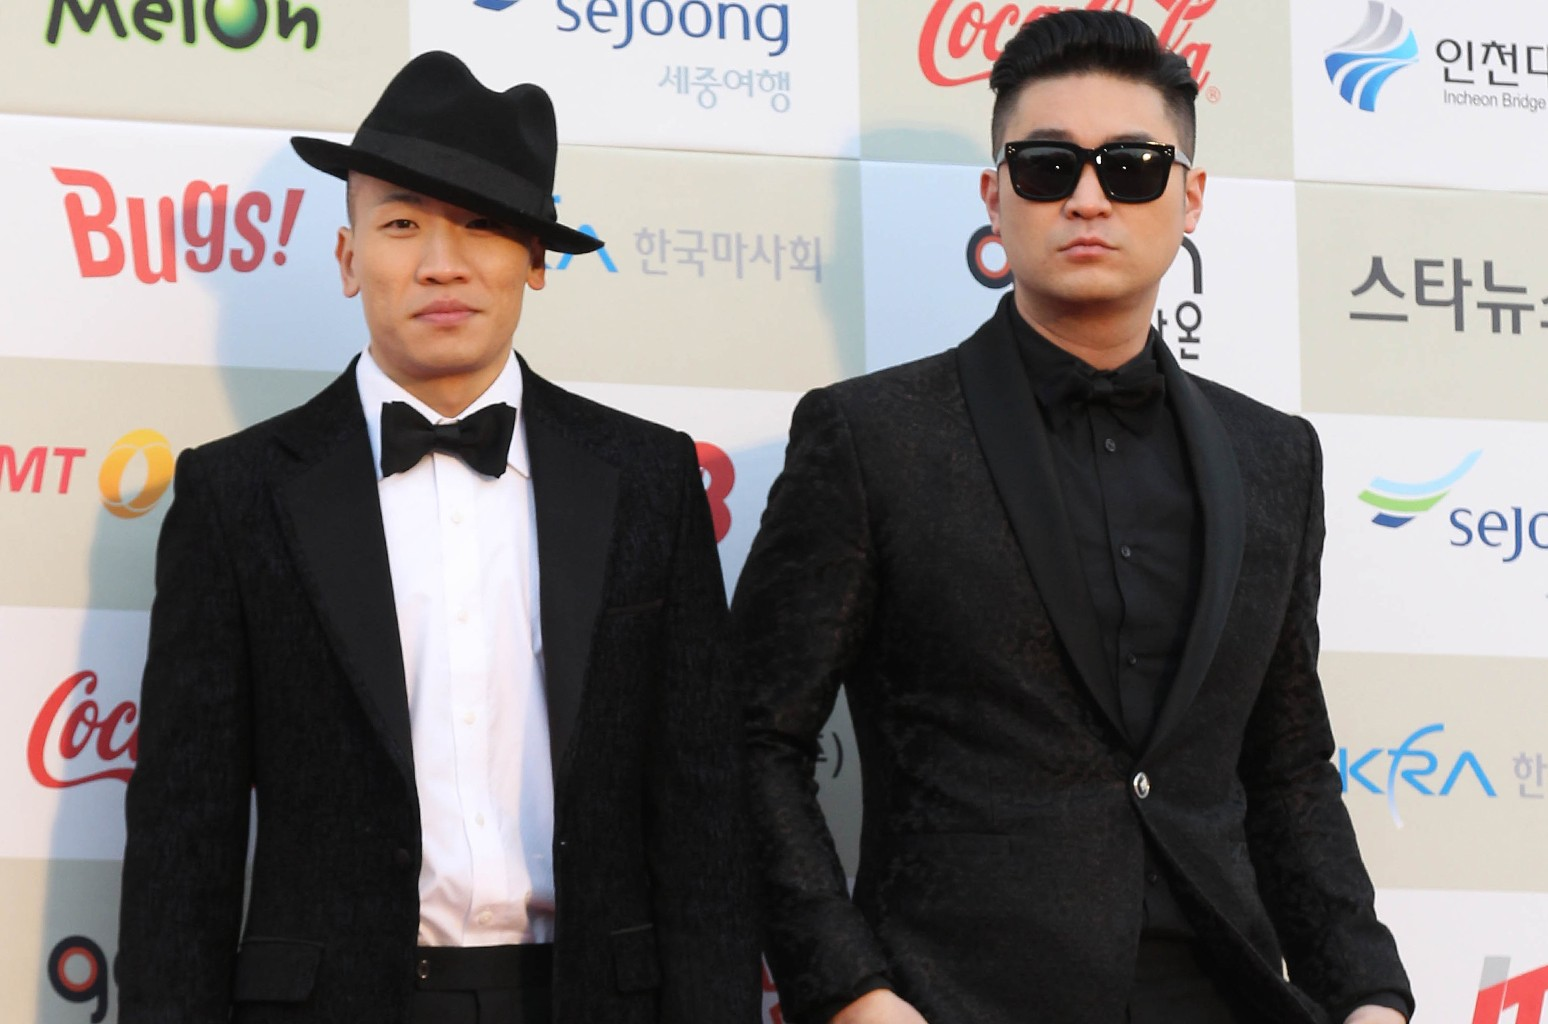 Dynamic Duo attend the Gaon Chart K-pop Awards at Olympic Park on Feb. 12, 2014 in Seoul, South Korea.